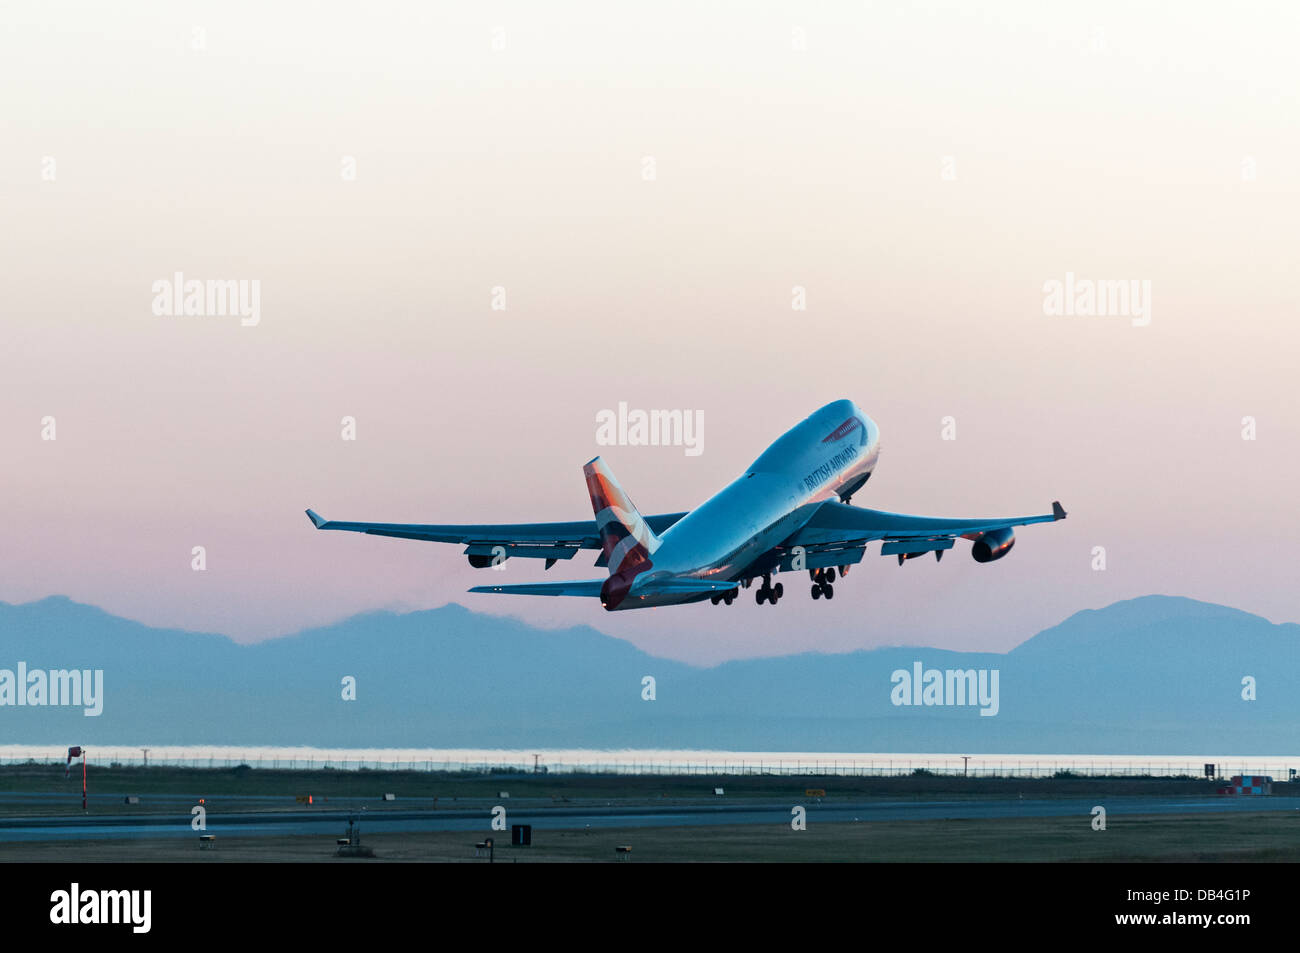 A British Airways (BA) Boeing 747-400 (747-436) wide body jumbo jet airliner takes off at dusk from Vancouver International, Stock Photo